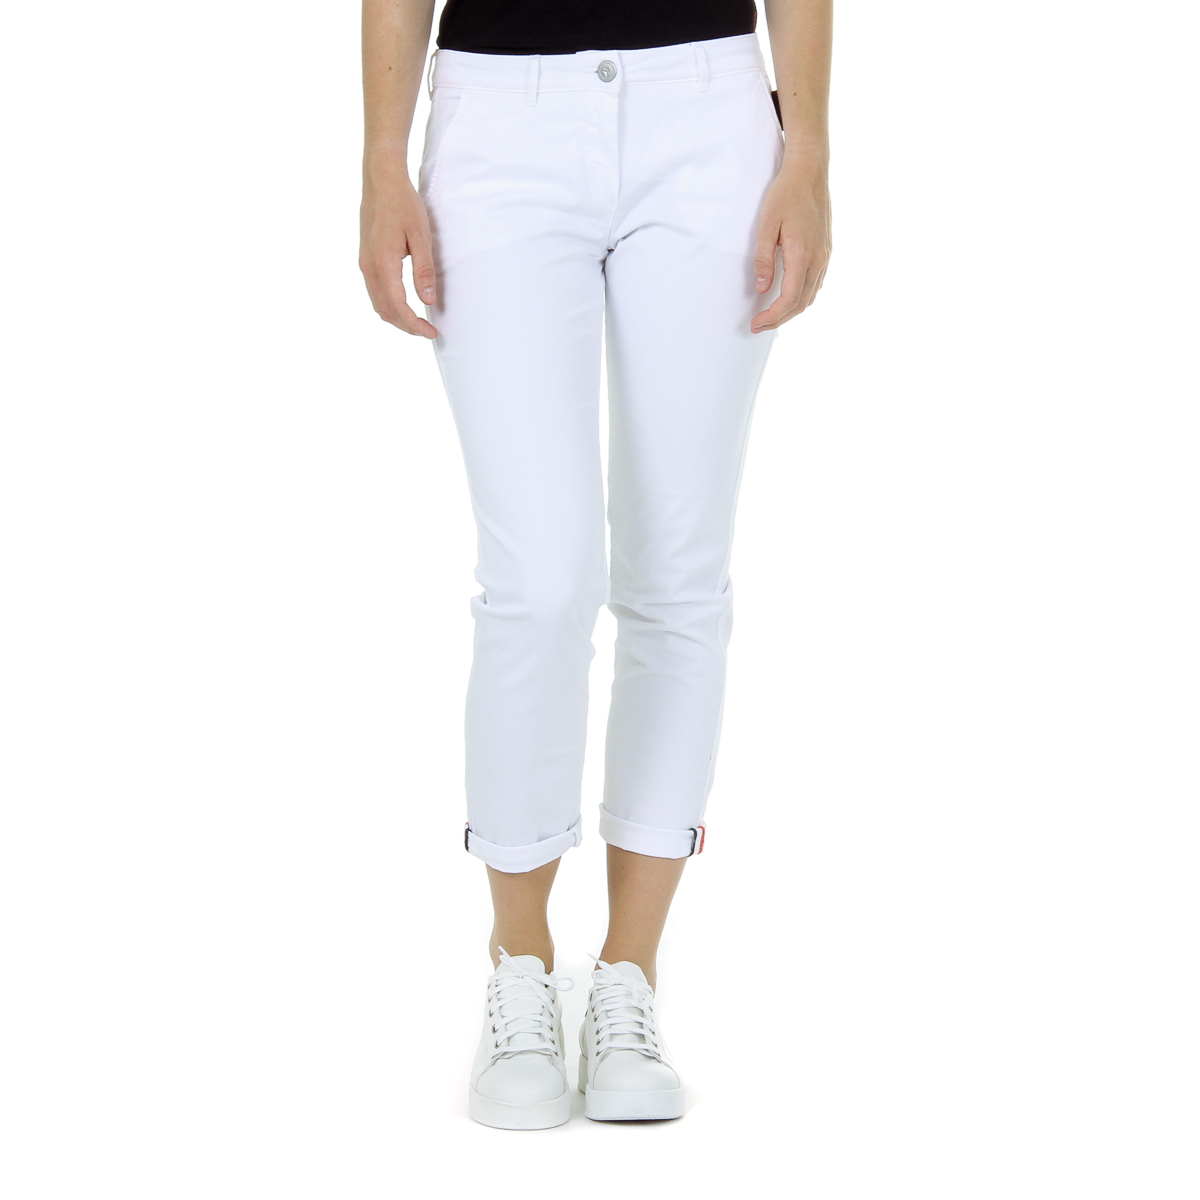 Primary image for Andrew Charles Womens Pants White PENDA